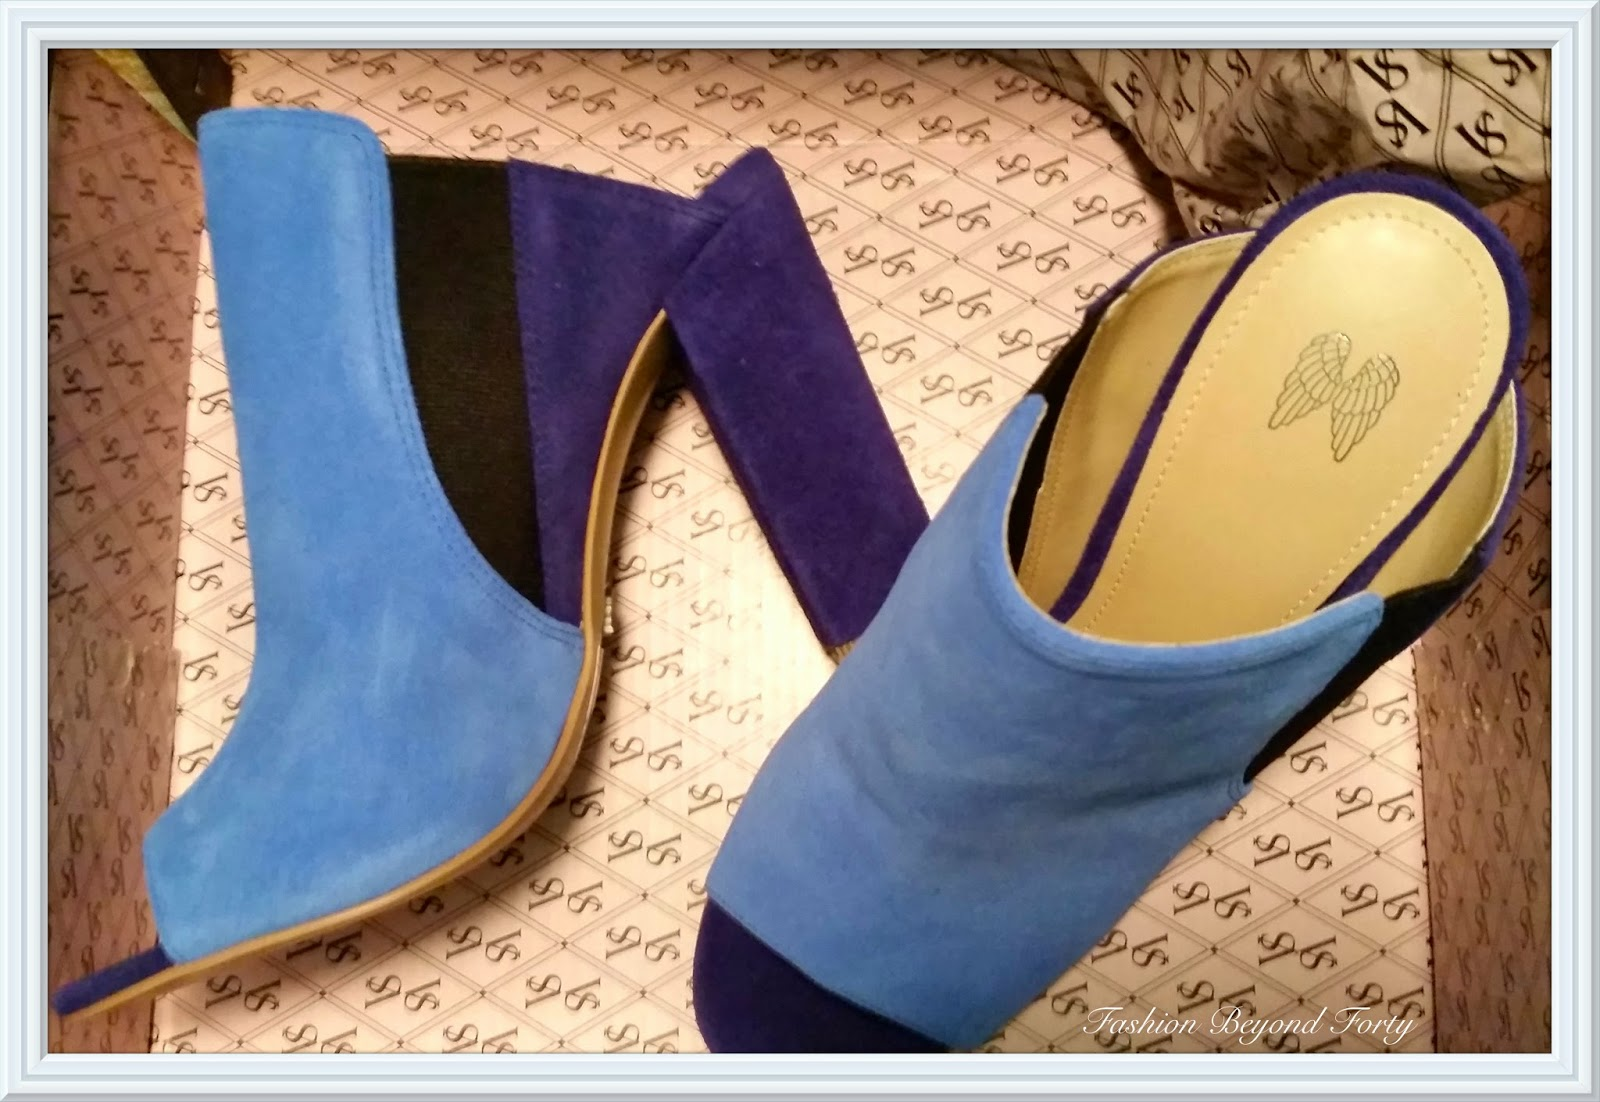 Happiness Is New Victoria's Secret Shoes Sale Fashion Beyond Forty